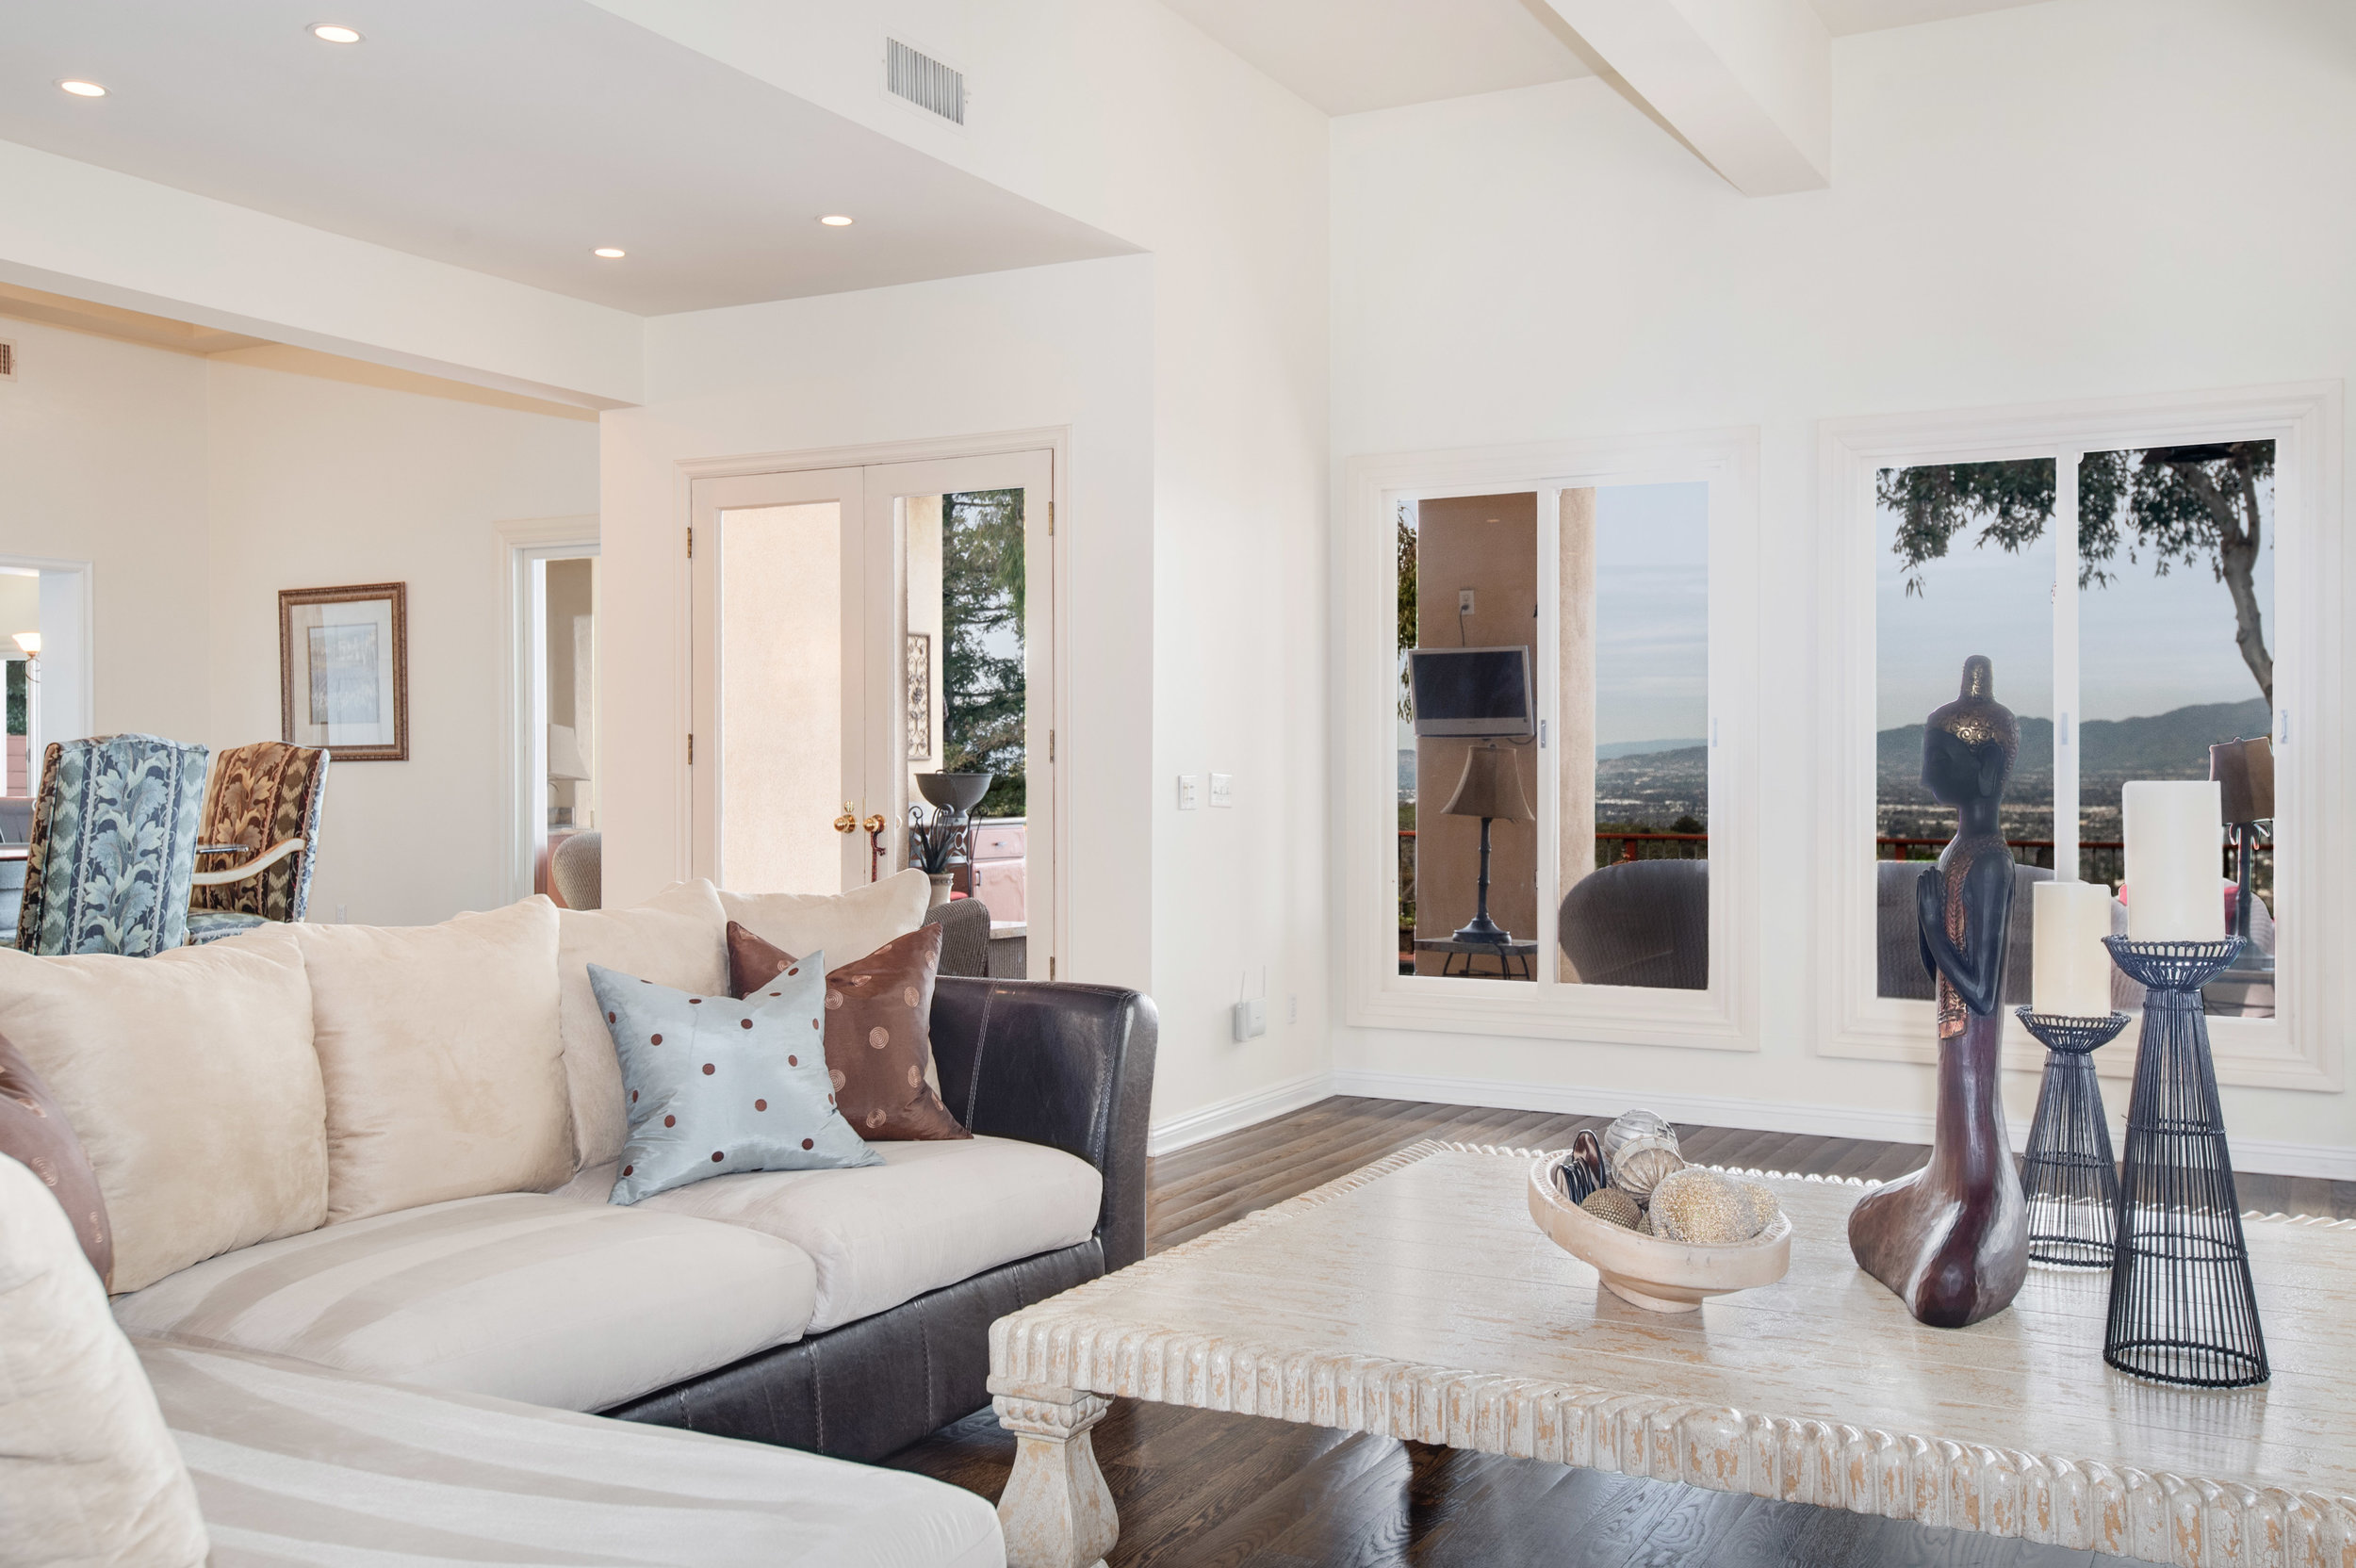 003 12027 Talus Place Beverly Hills 90210 For Sale Lease The Malibu Life Team Luxury Real Estate.jpg